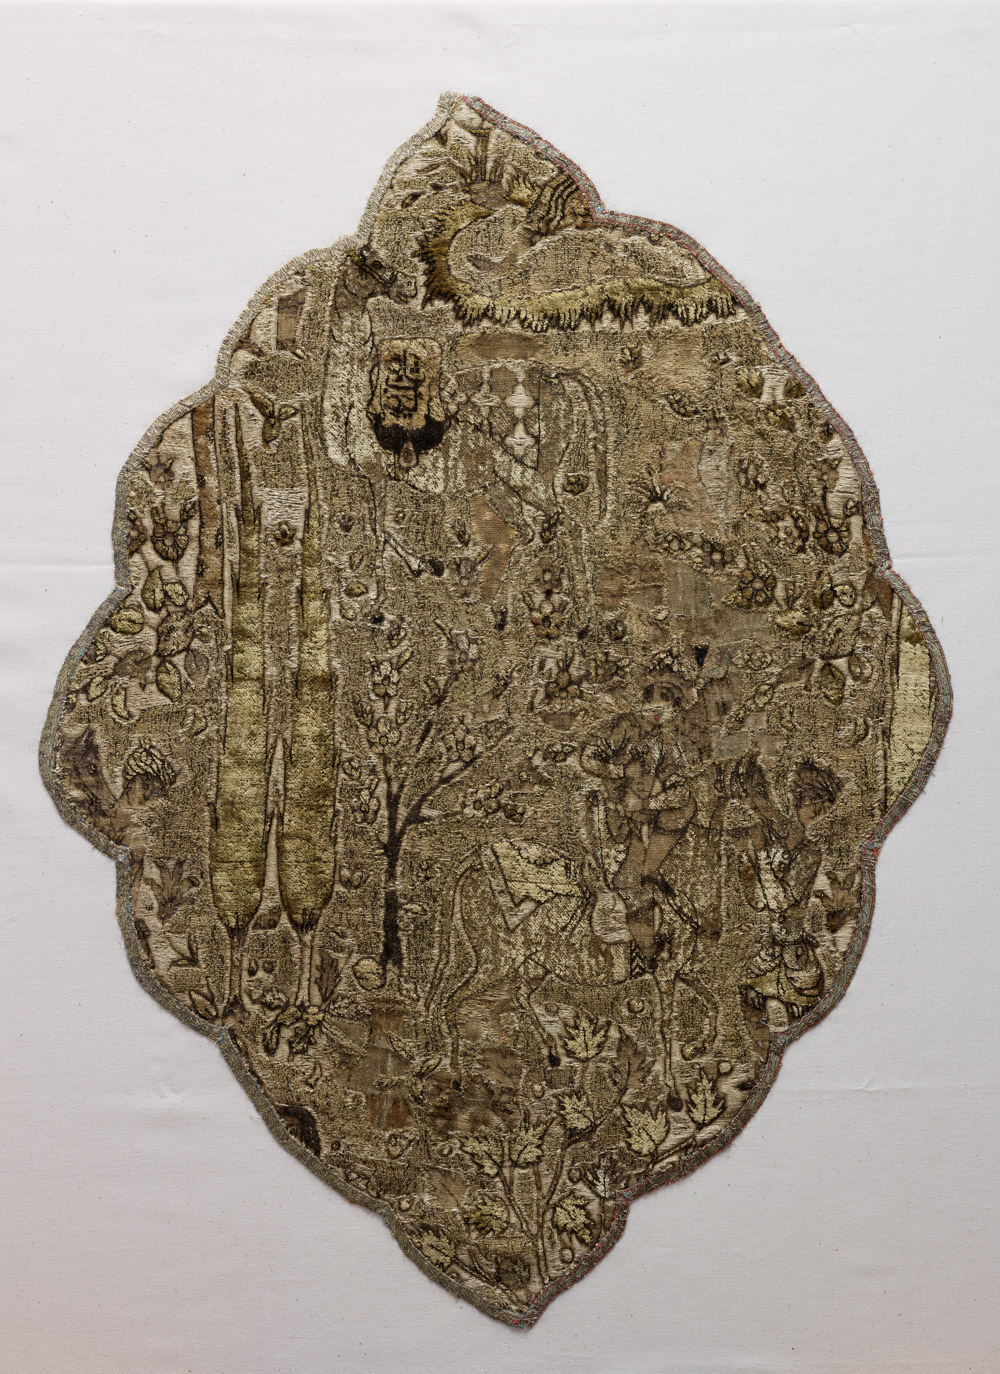 The Keir Collection of Islamic Art on loan to the Dallas Museum of Art